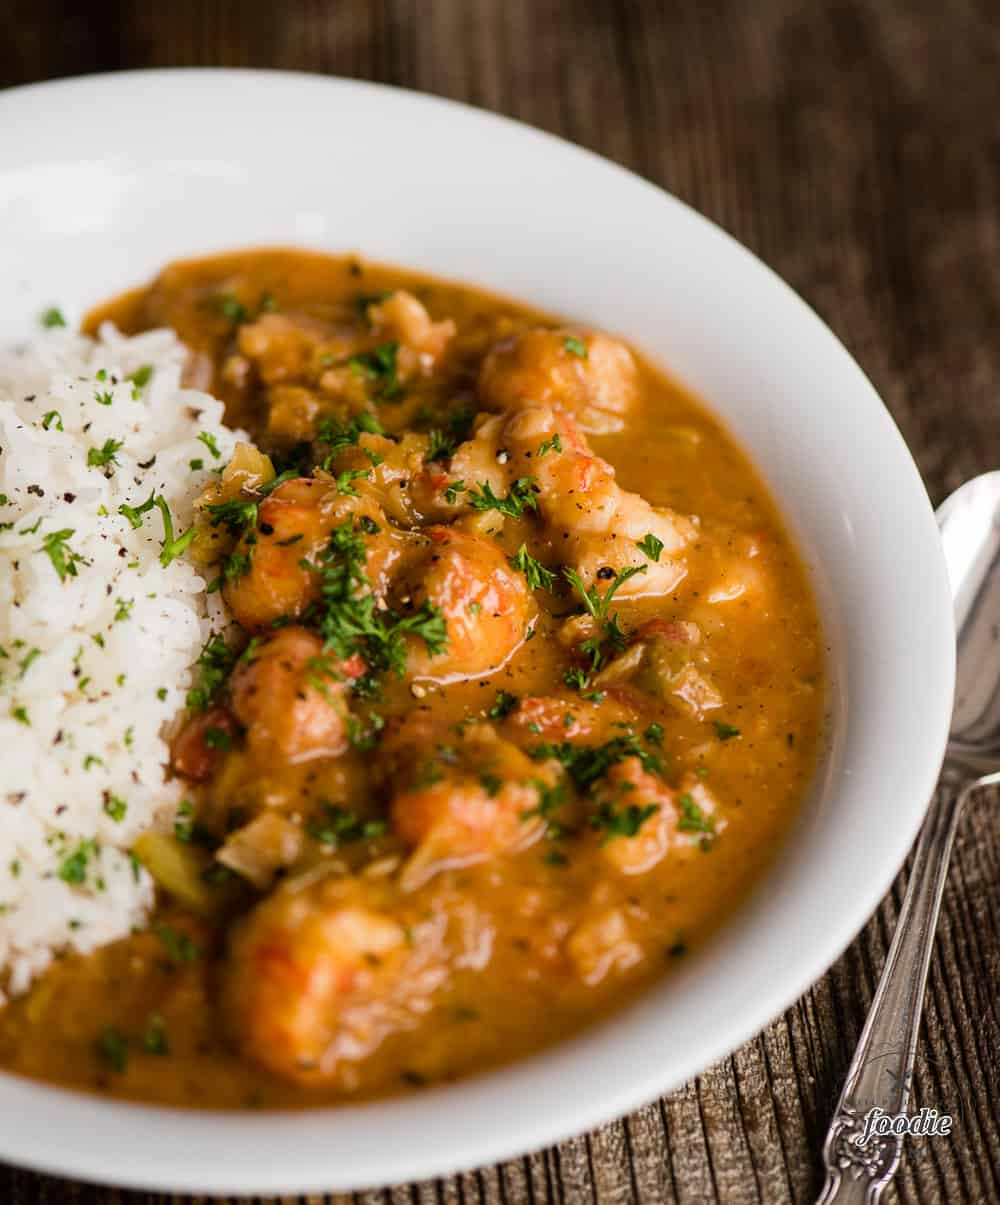 Homemade Crawfish Etouffee Recipe And Video Self Proclaimed Foodie